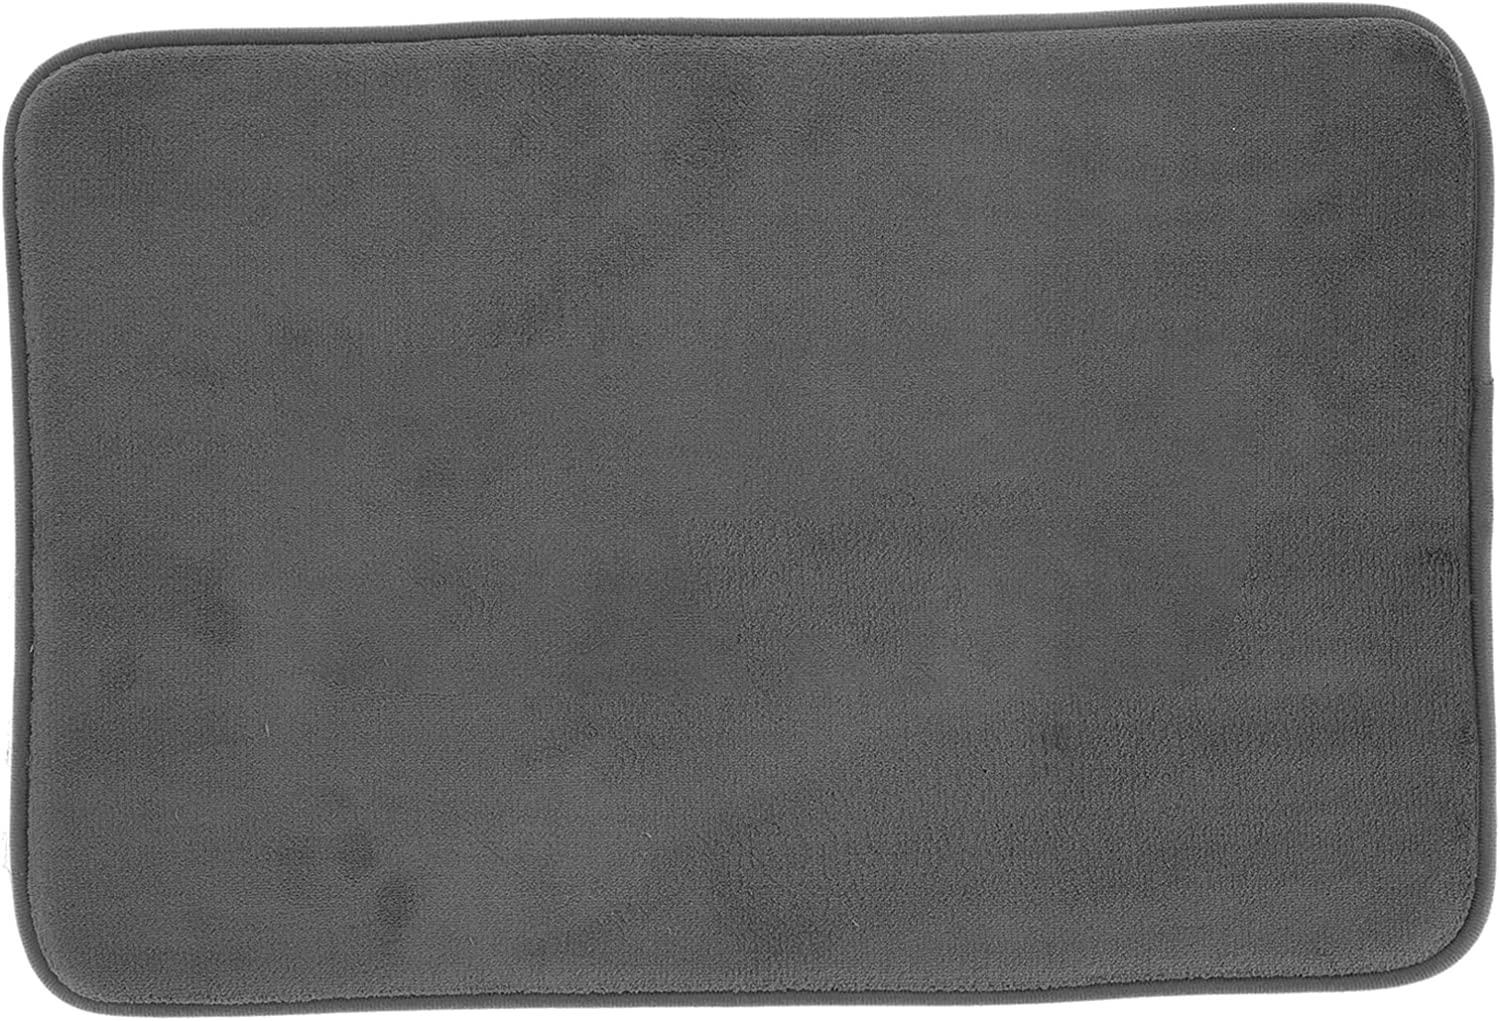 Door Mat Year-end annual account Entry Rug Floor Mats Carpet NEW before selling 22.7x15.6x0.4in Absorbent